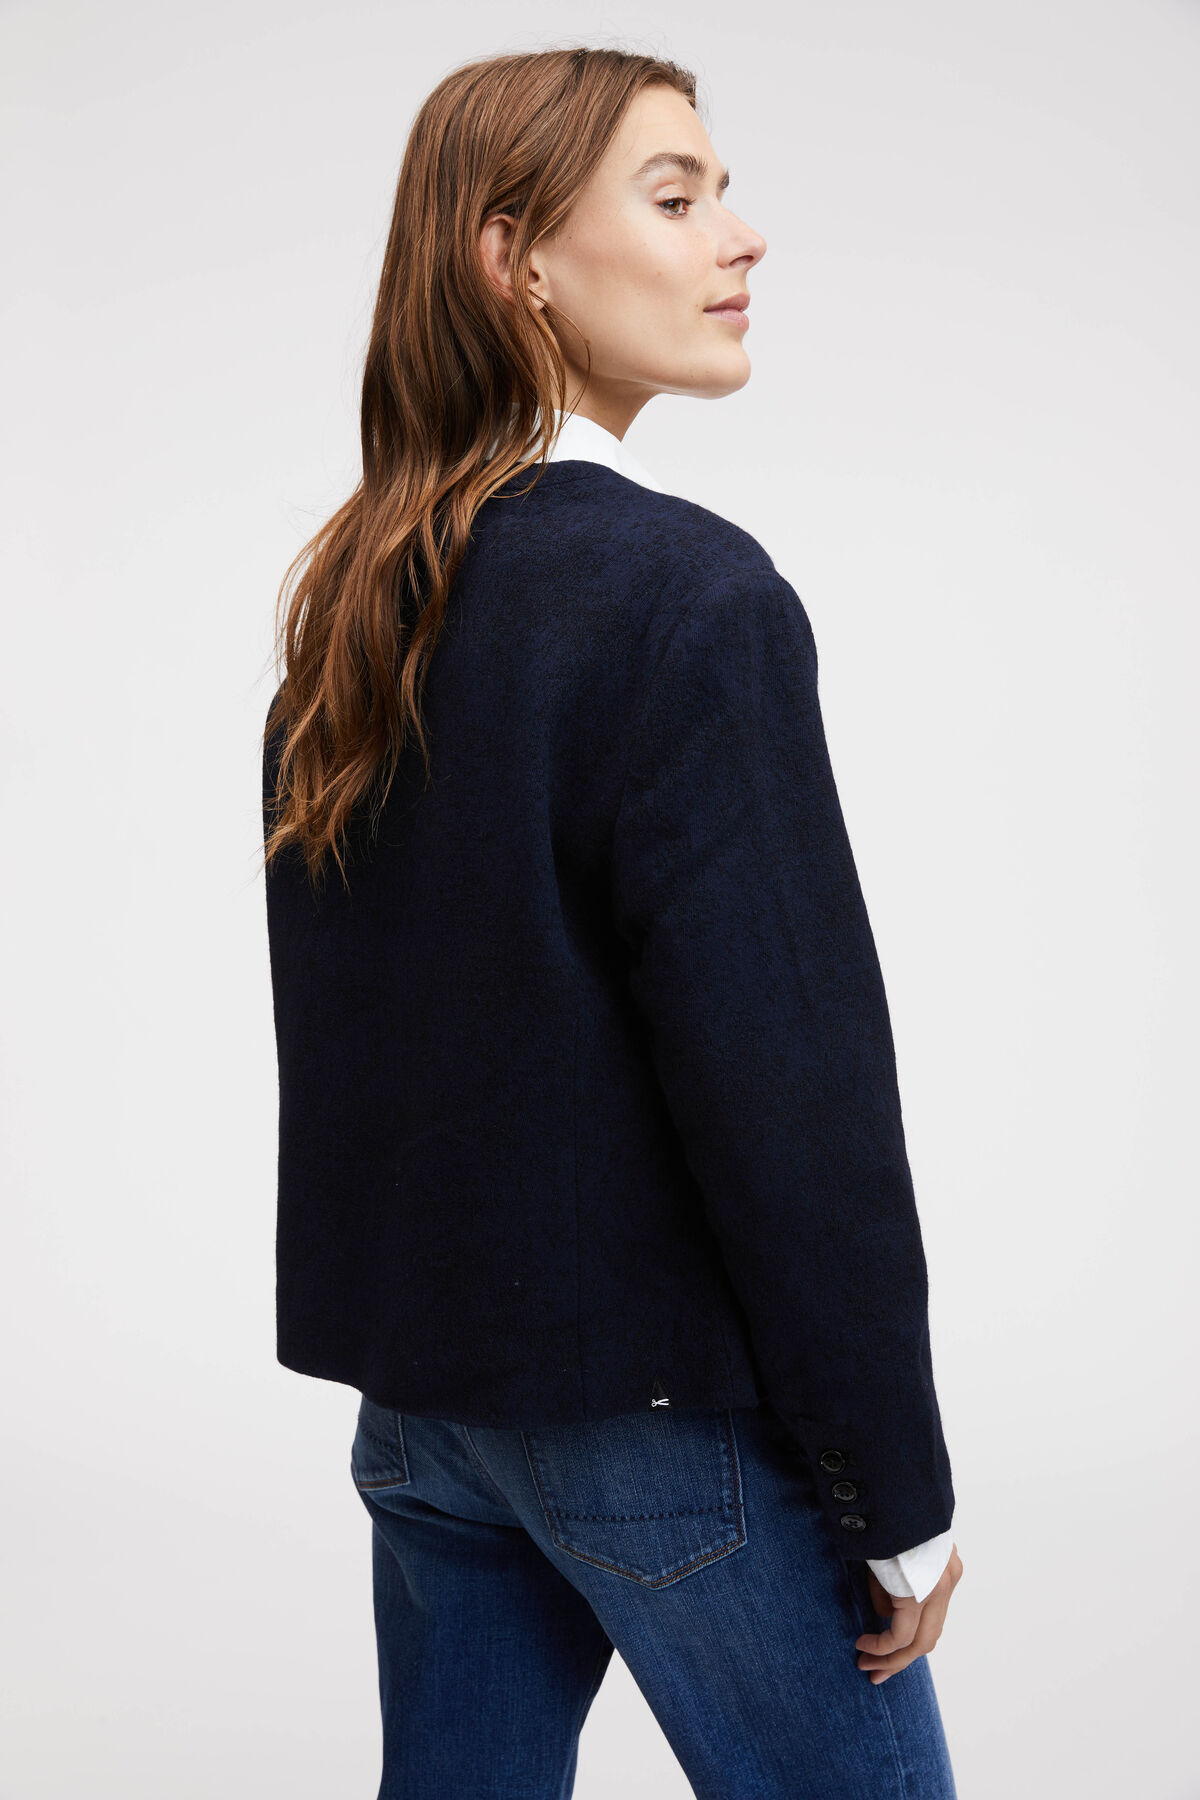 KATE BOUCLE JACKET THICK TEXTURED FABRIC - Oversized Fit